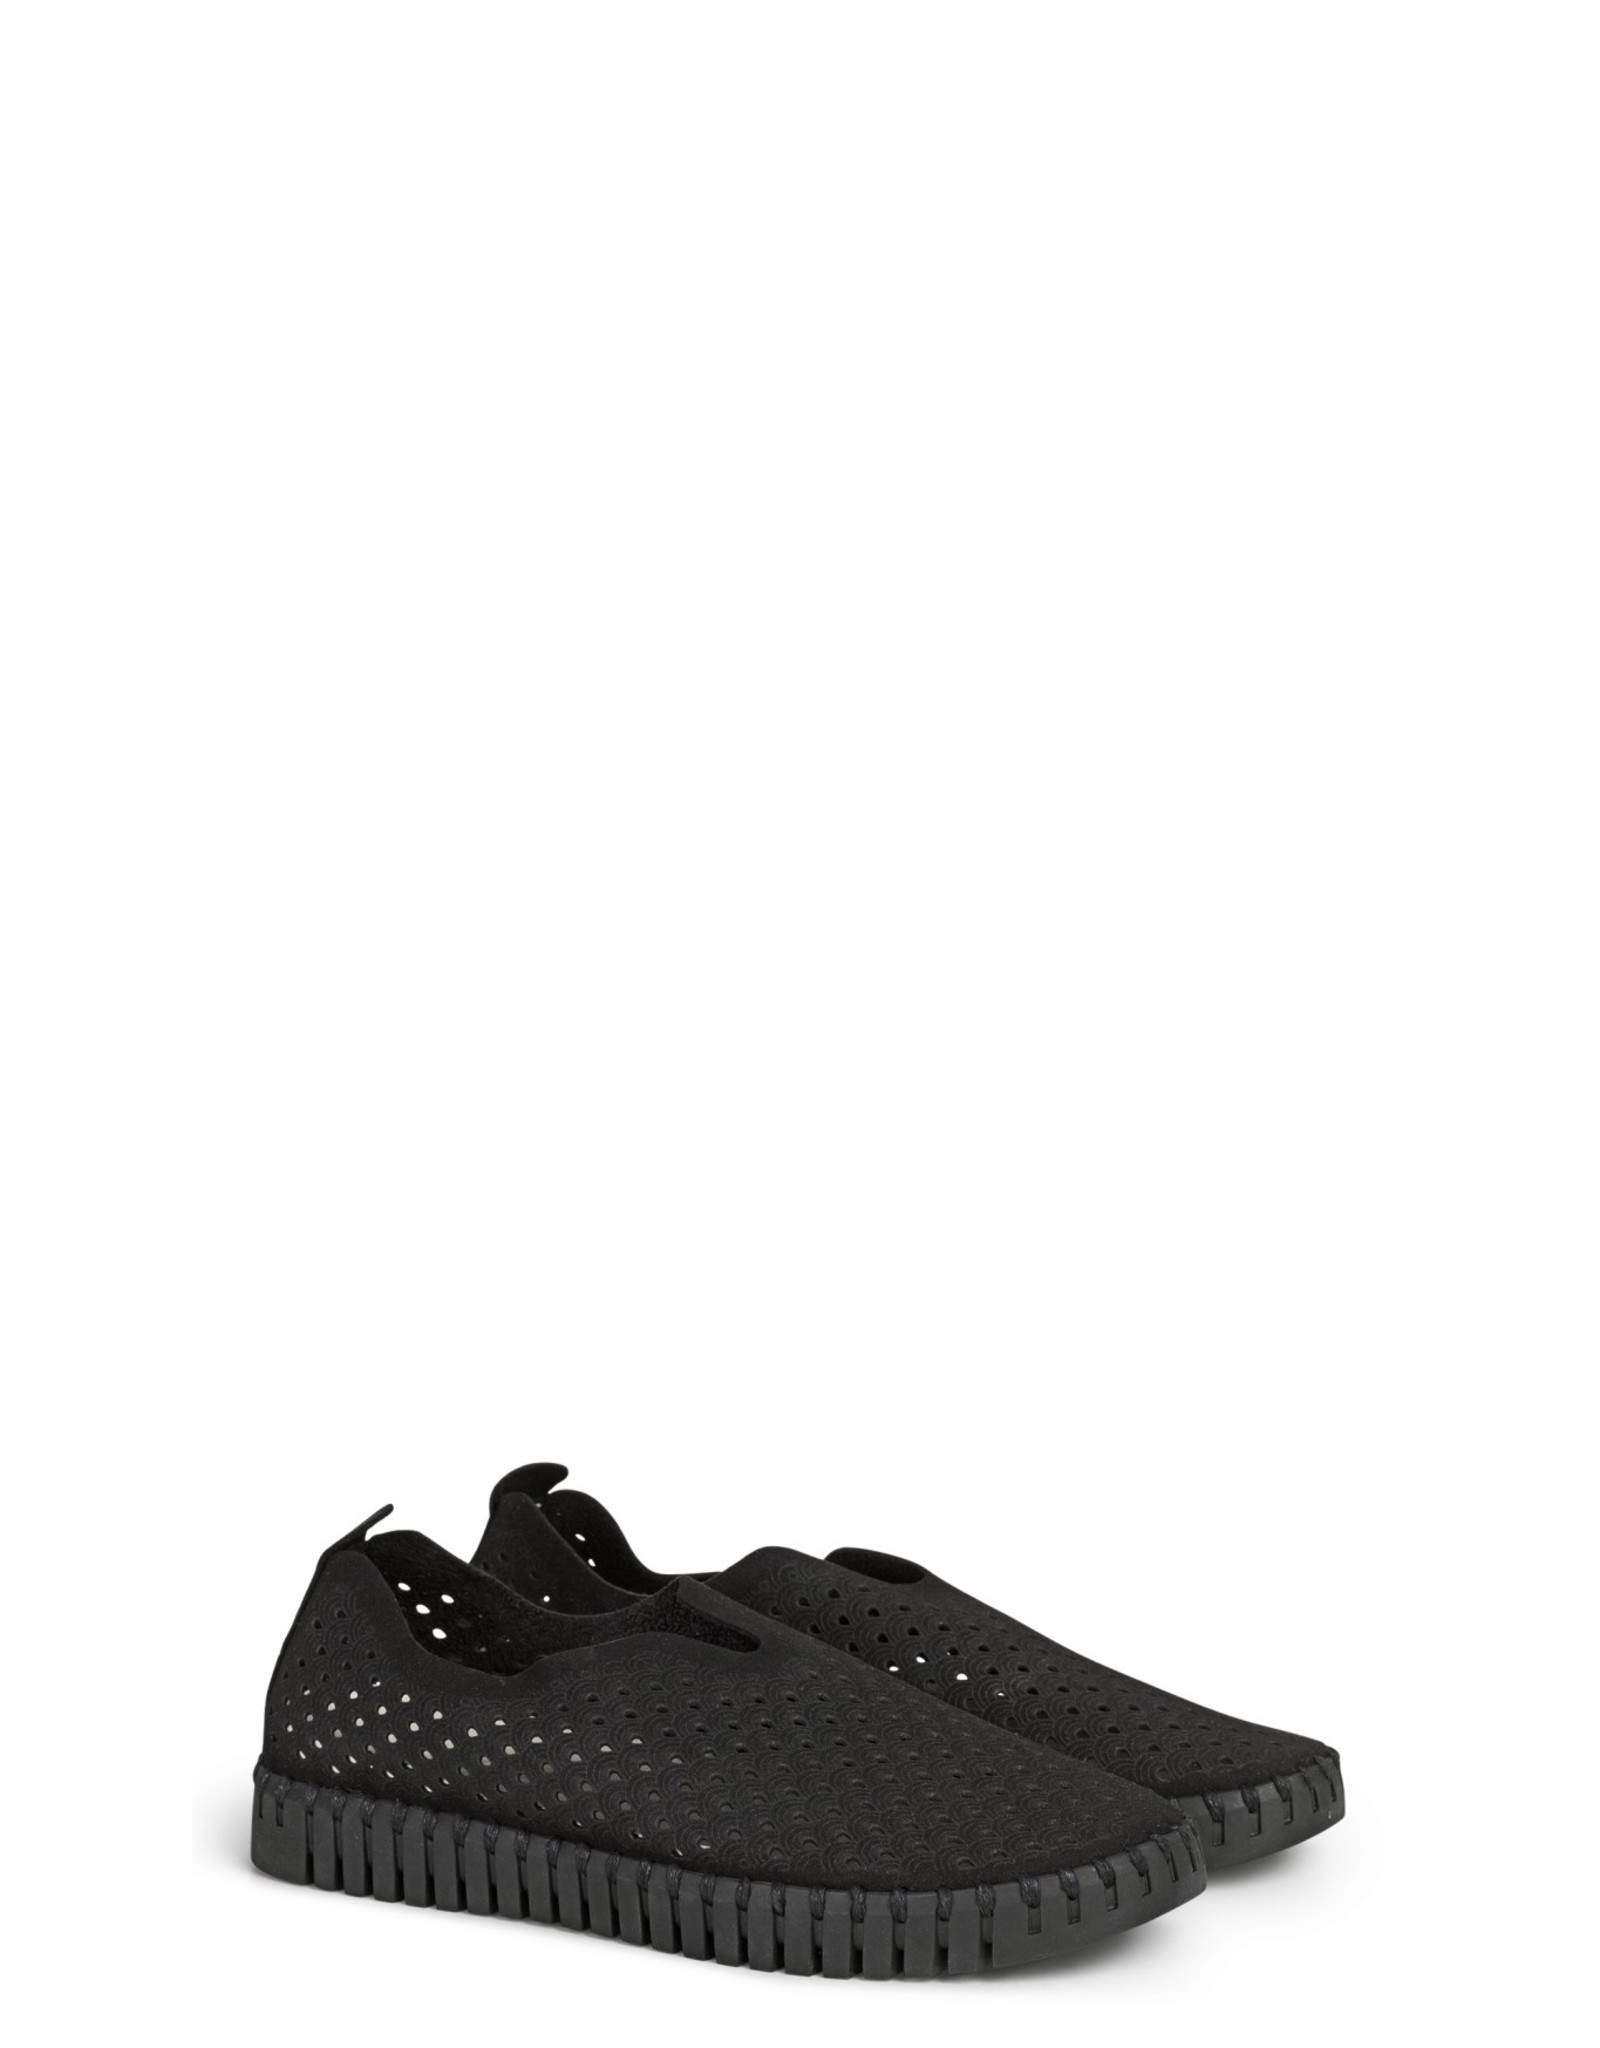 Ilse Jacobsen Ilse Jacobsen Tulip Slip on Flats in Black on Black